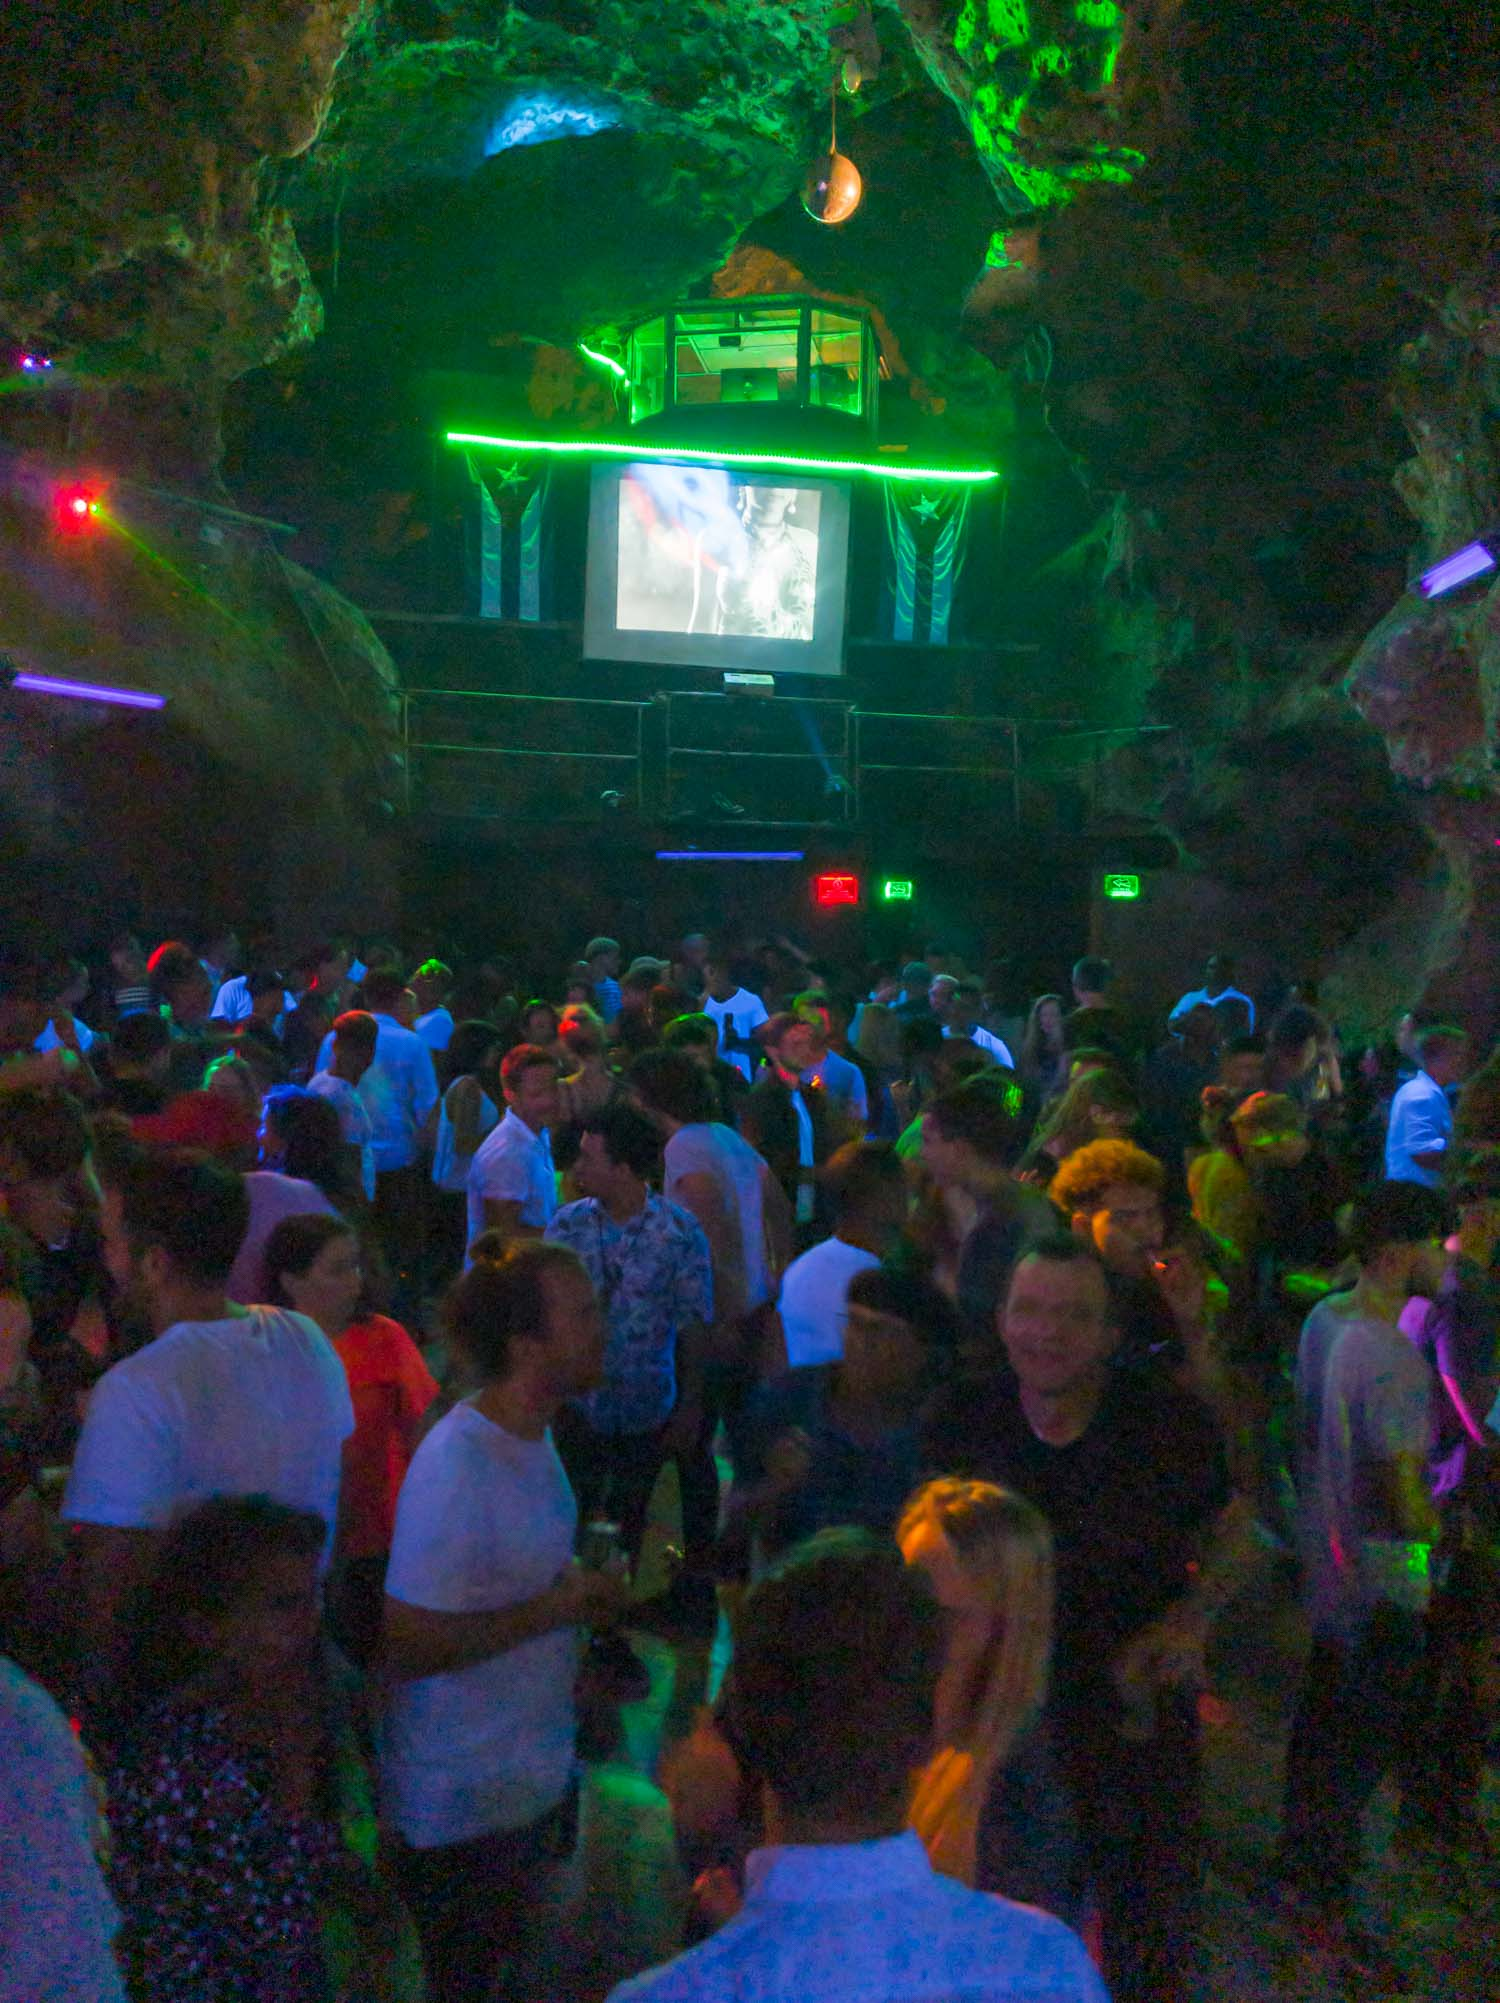 Disco Ayala in Trinidad Cuba is a bar located in a cave.